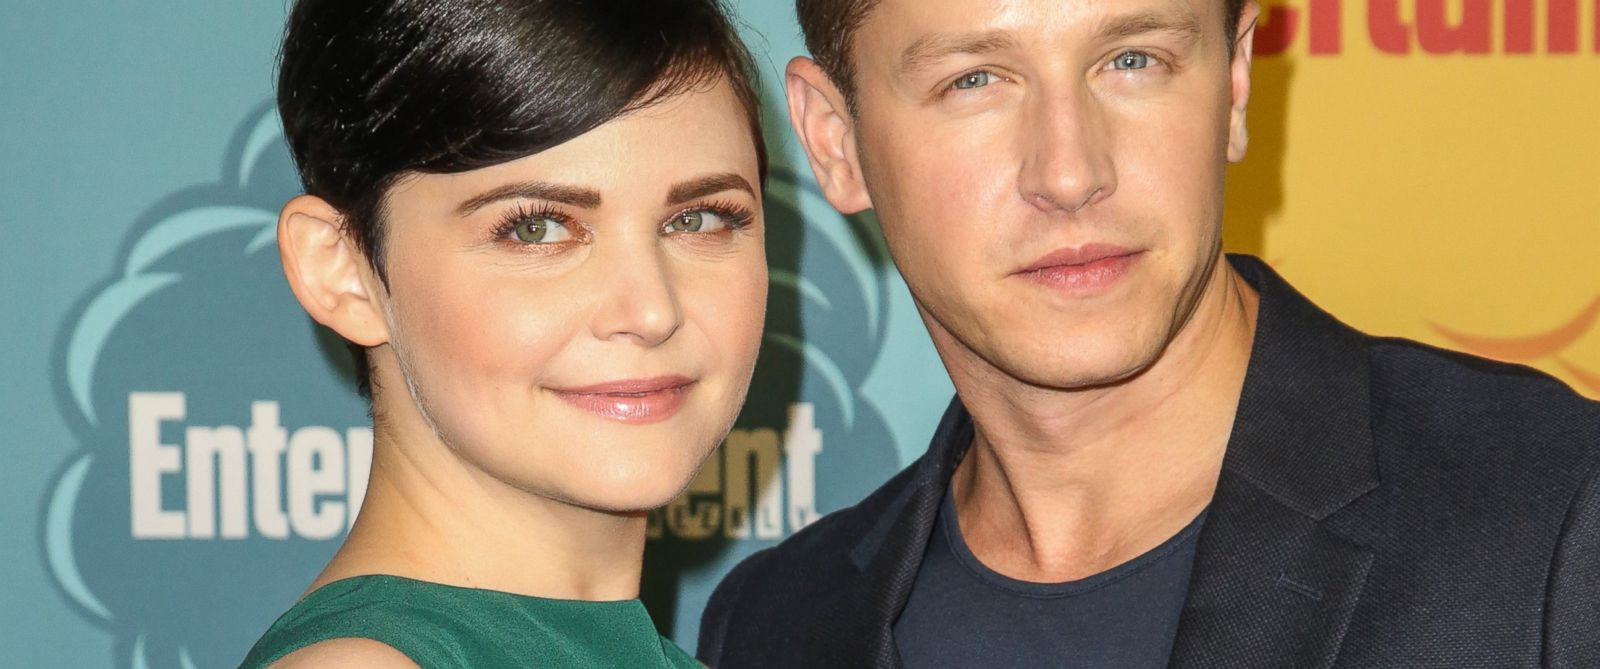 PHOTO: Actors Ginnifer Goodwin and Josh Dallas arrive at Entertainment Weeklys annual Comic-Con celebration at Float at Hard Rock Hotel San Diego, July 20, 2013 in San Diego, Calif.